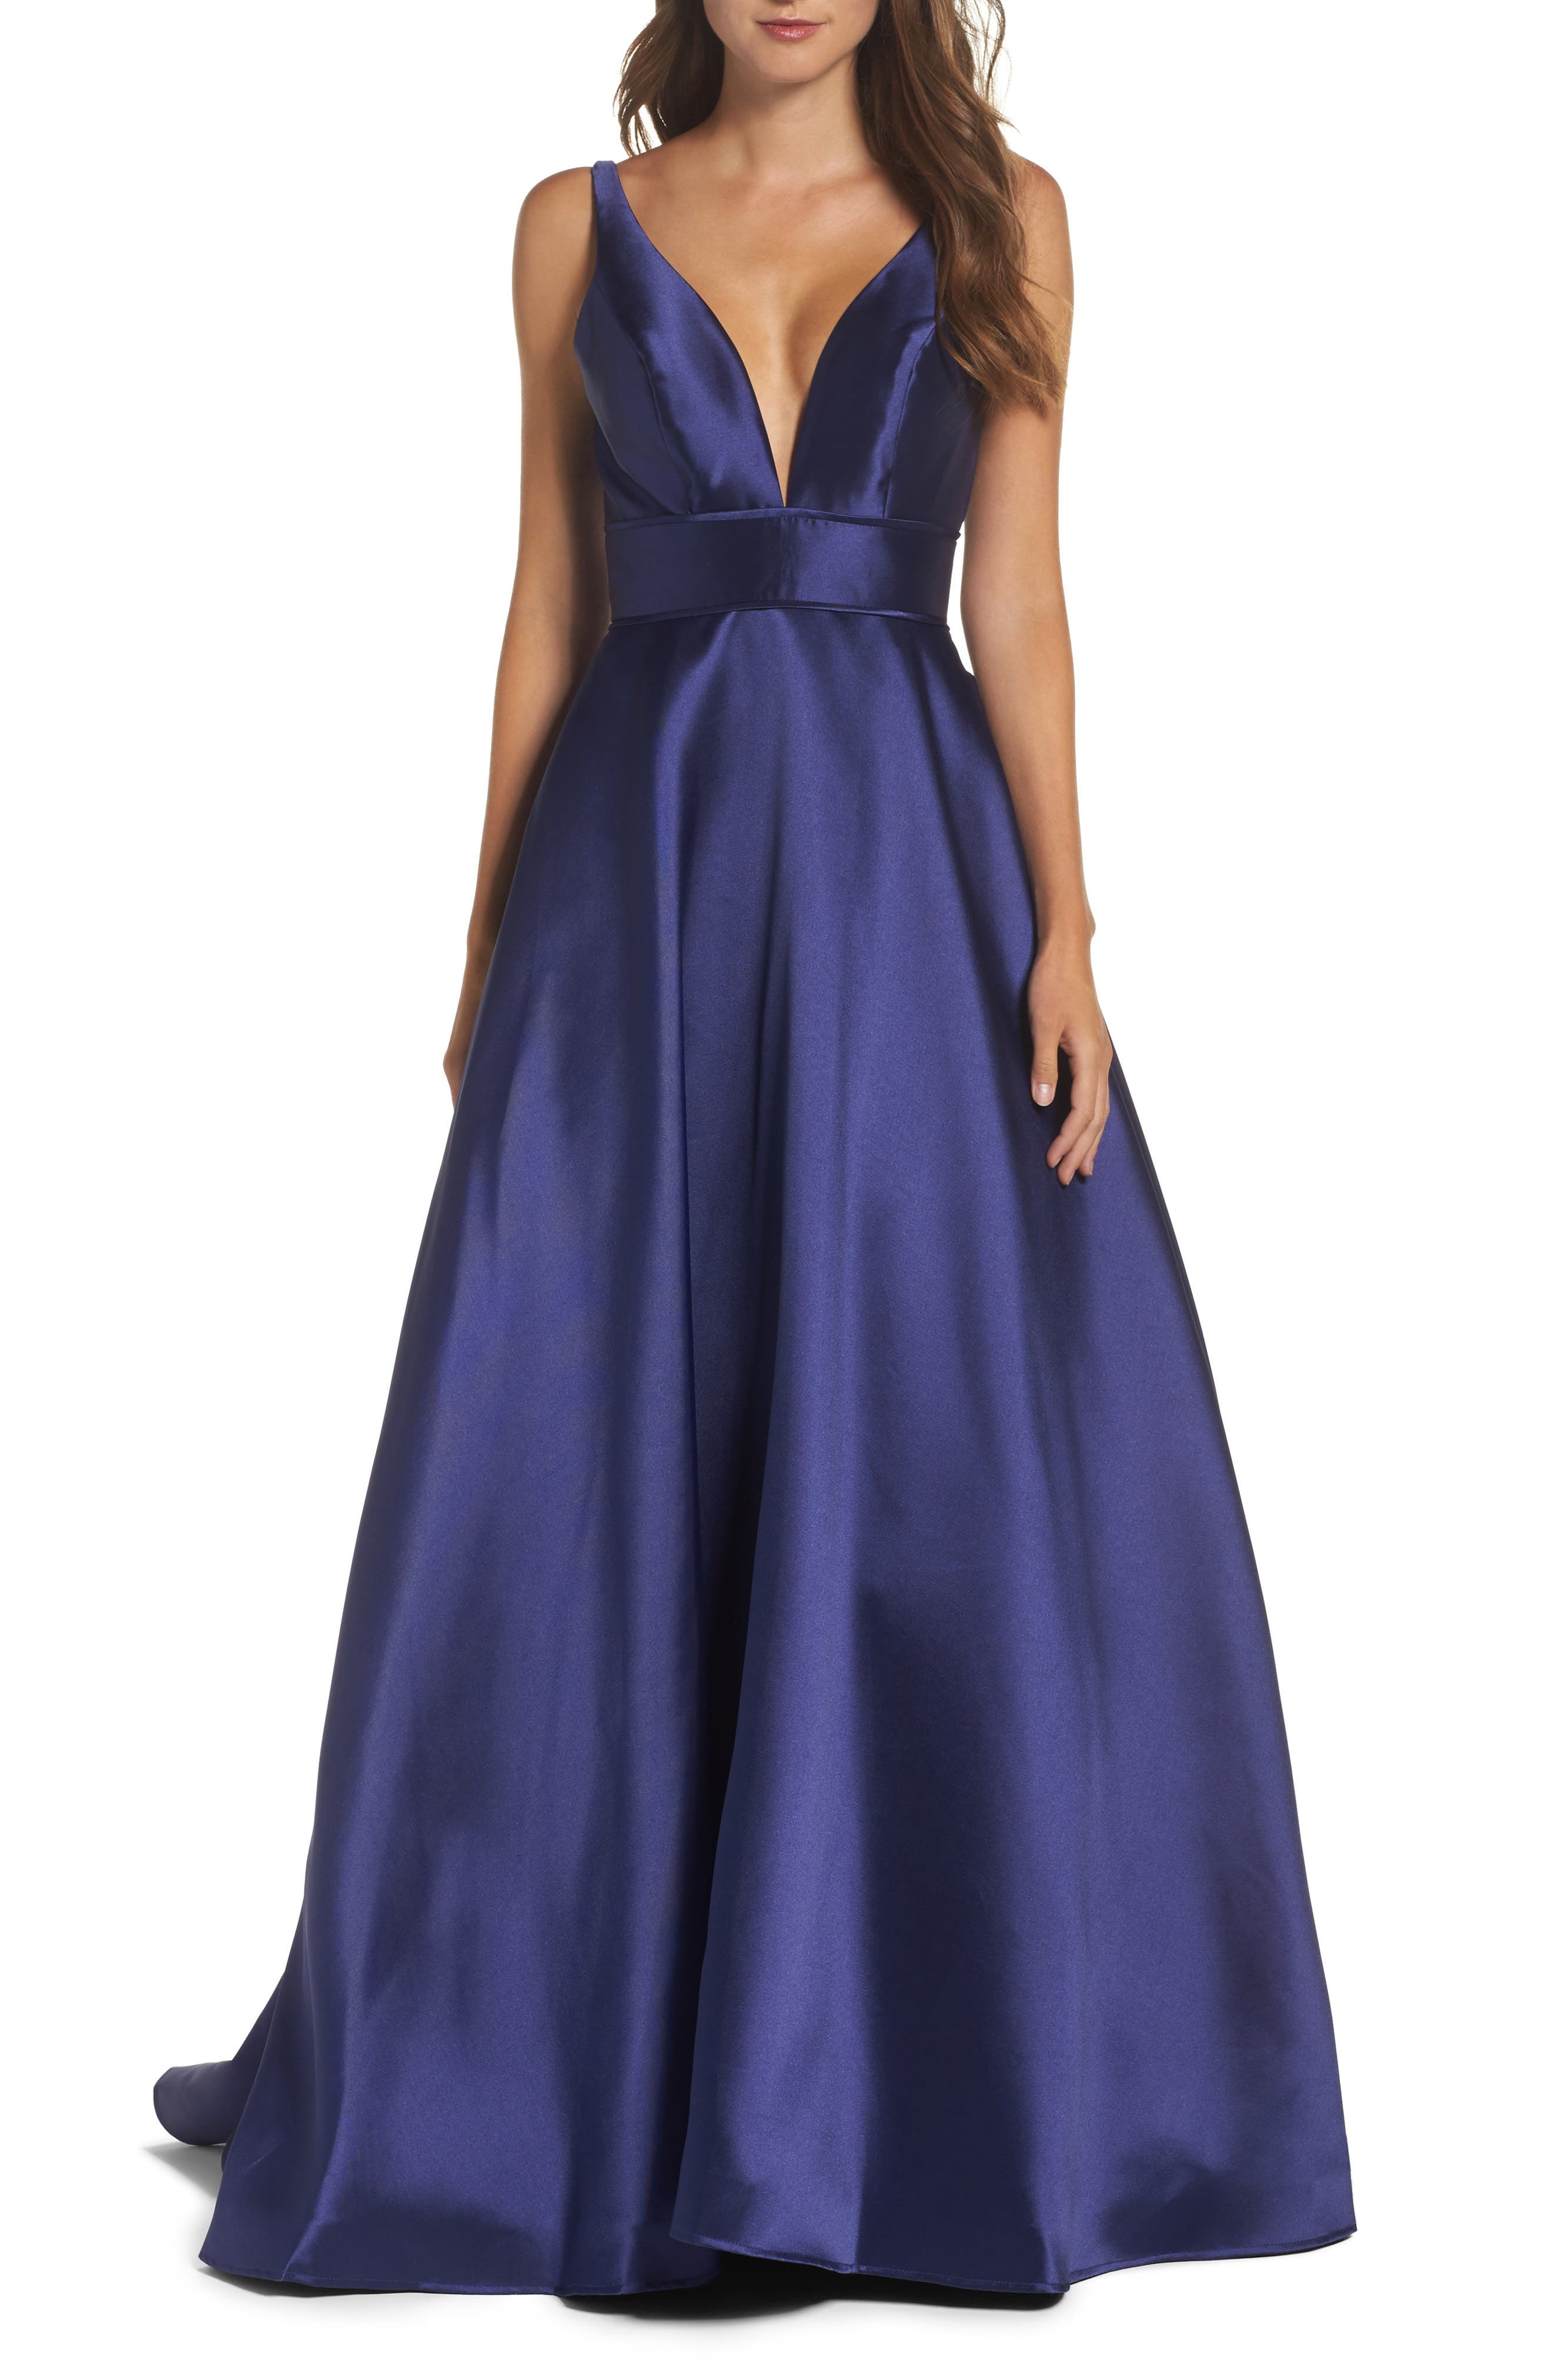 Plunging Sweetheart Neck Ballgown,                             Main thumbnail 1, color,                             NAVY